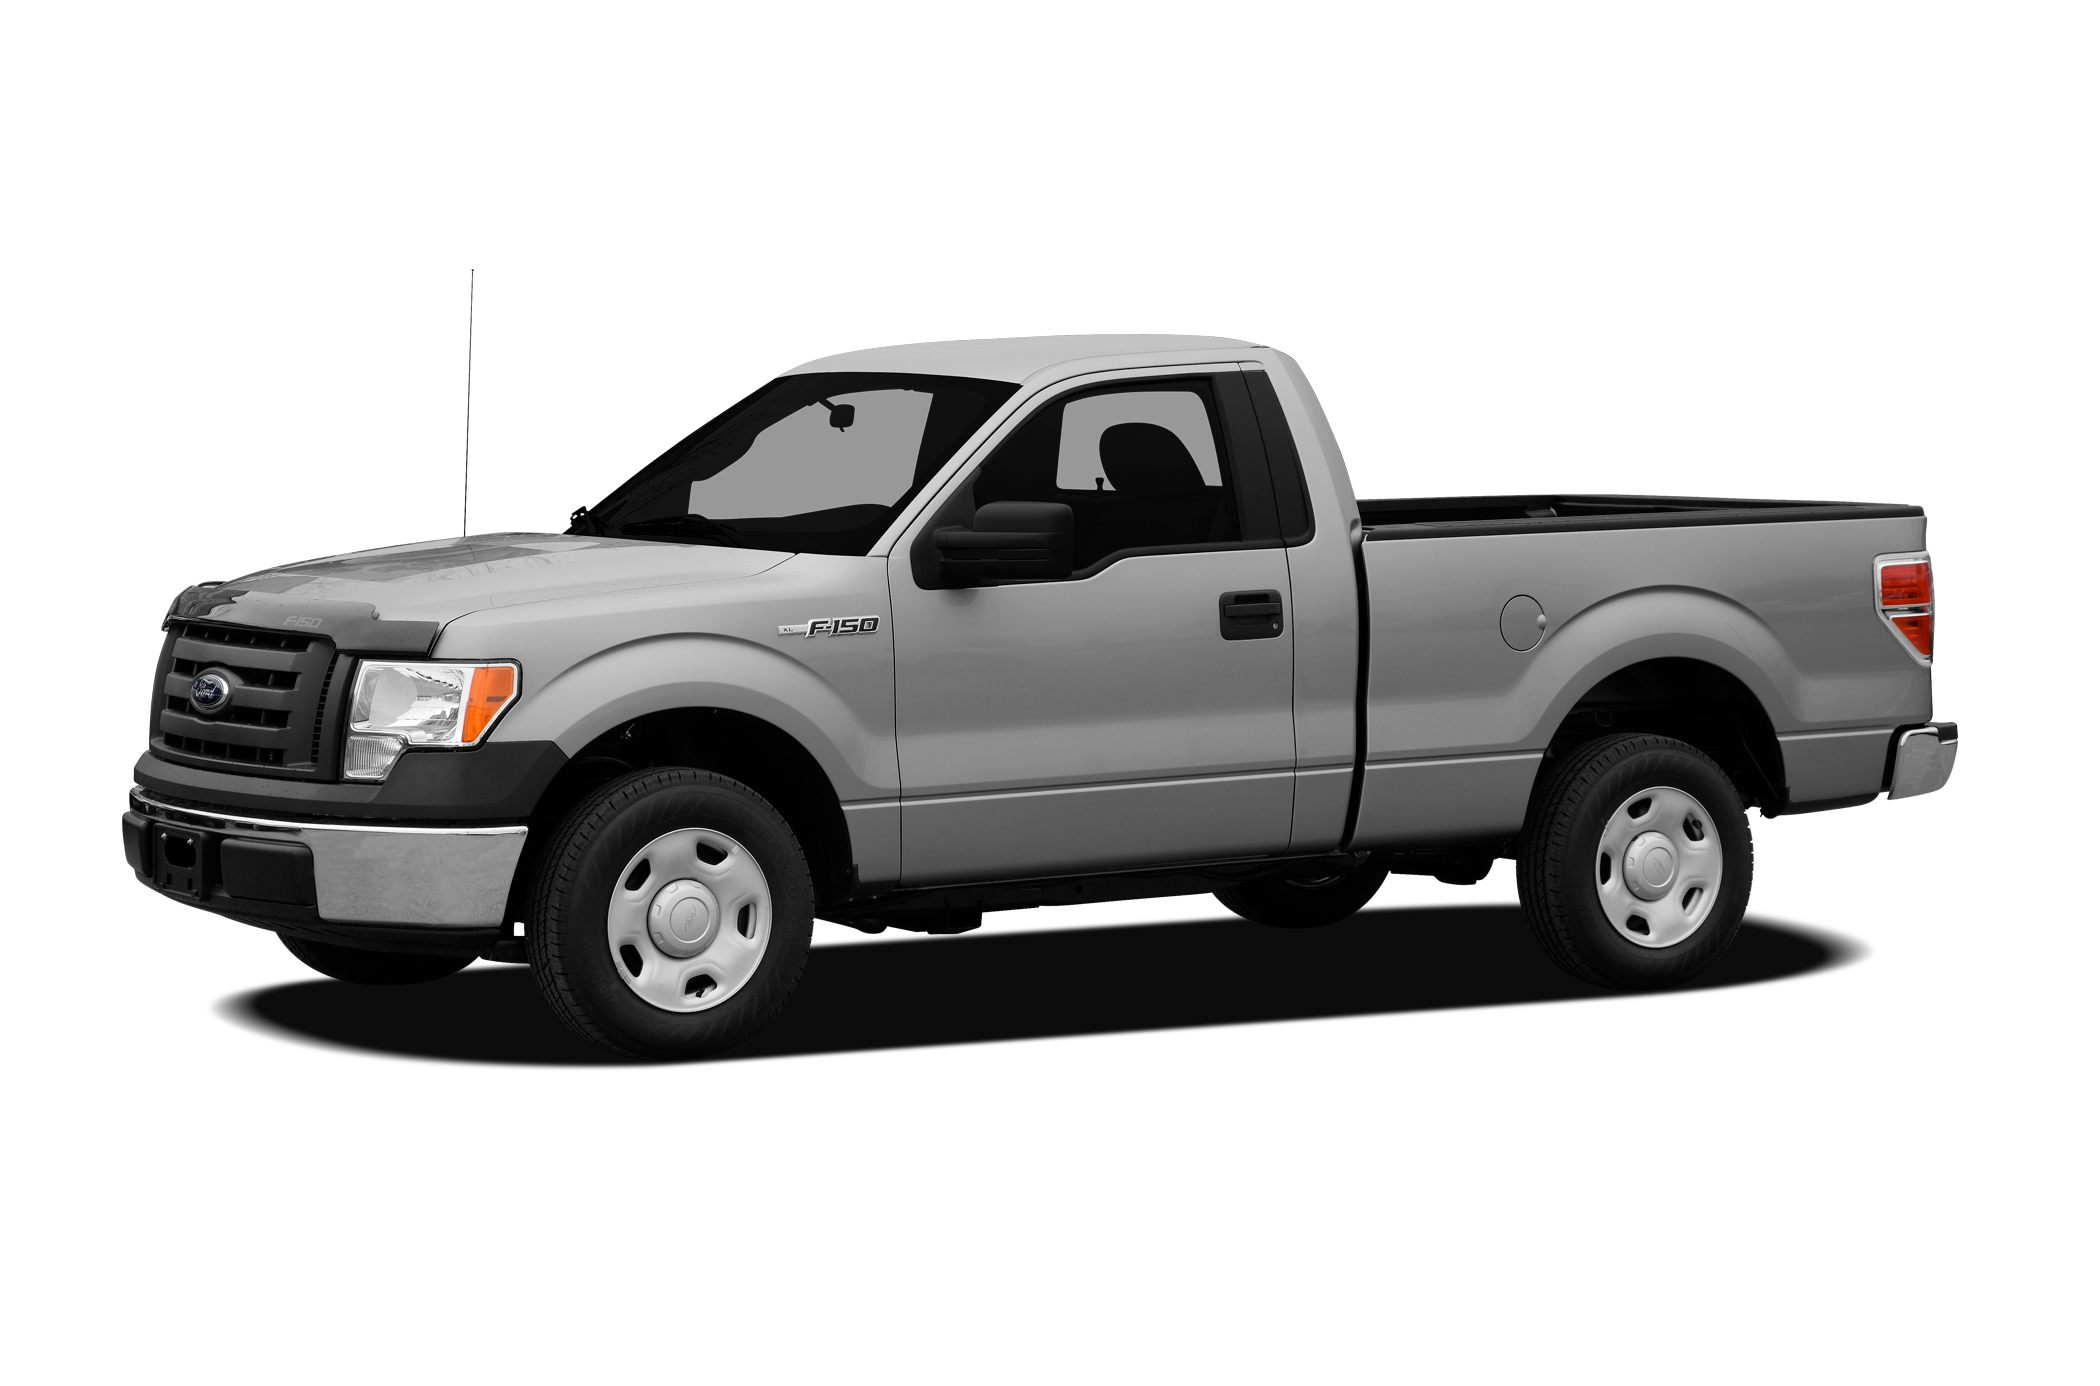 2011 Ford F150 XLT Crew Cab Pickup for sale in Jackson for $32,000 with 97,254 miles.